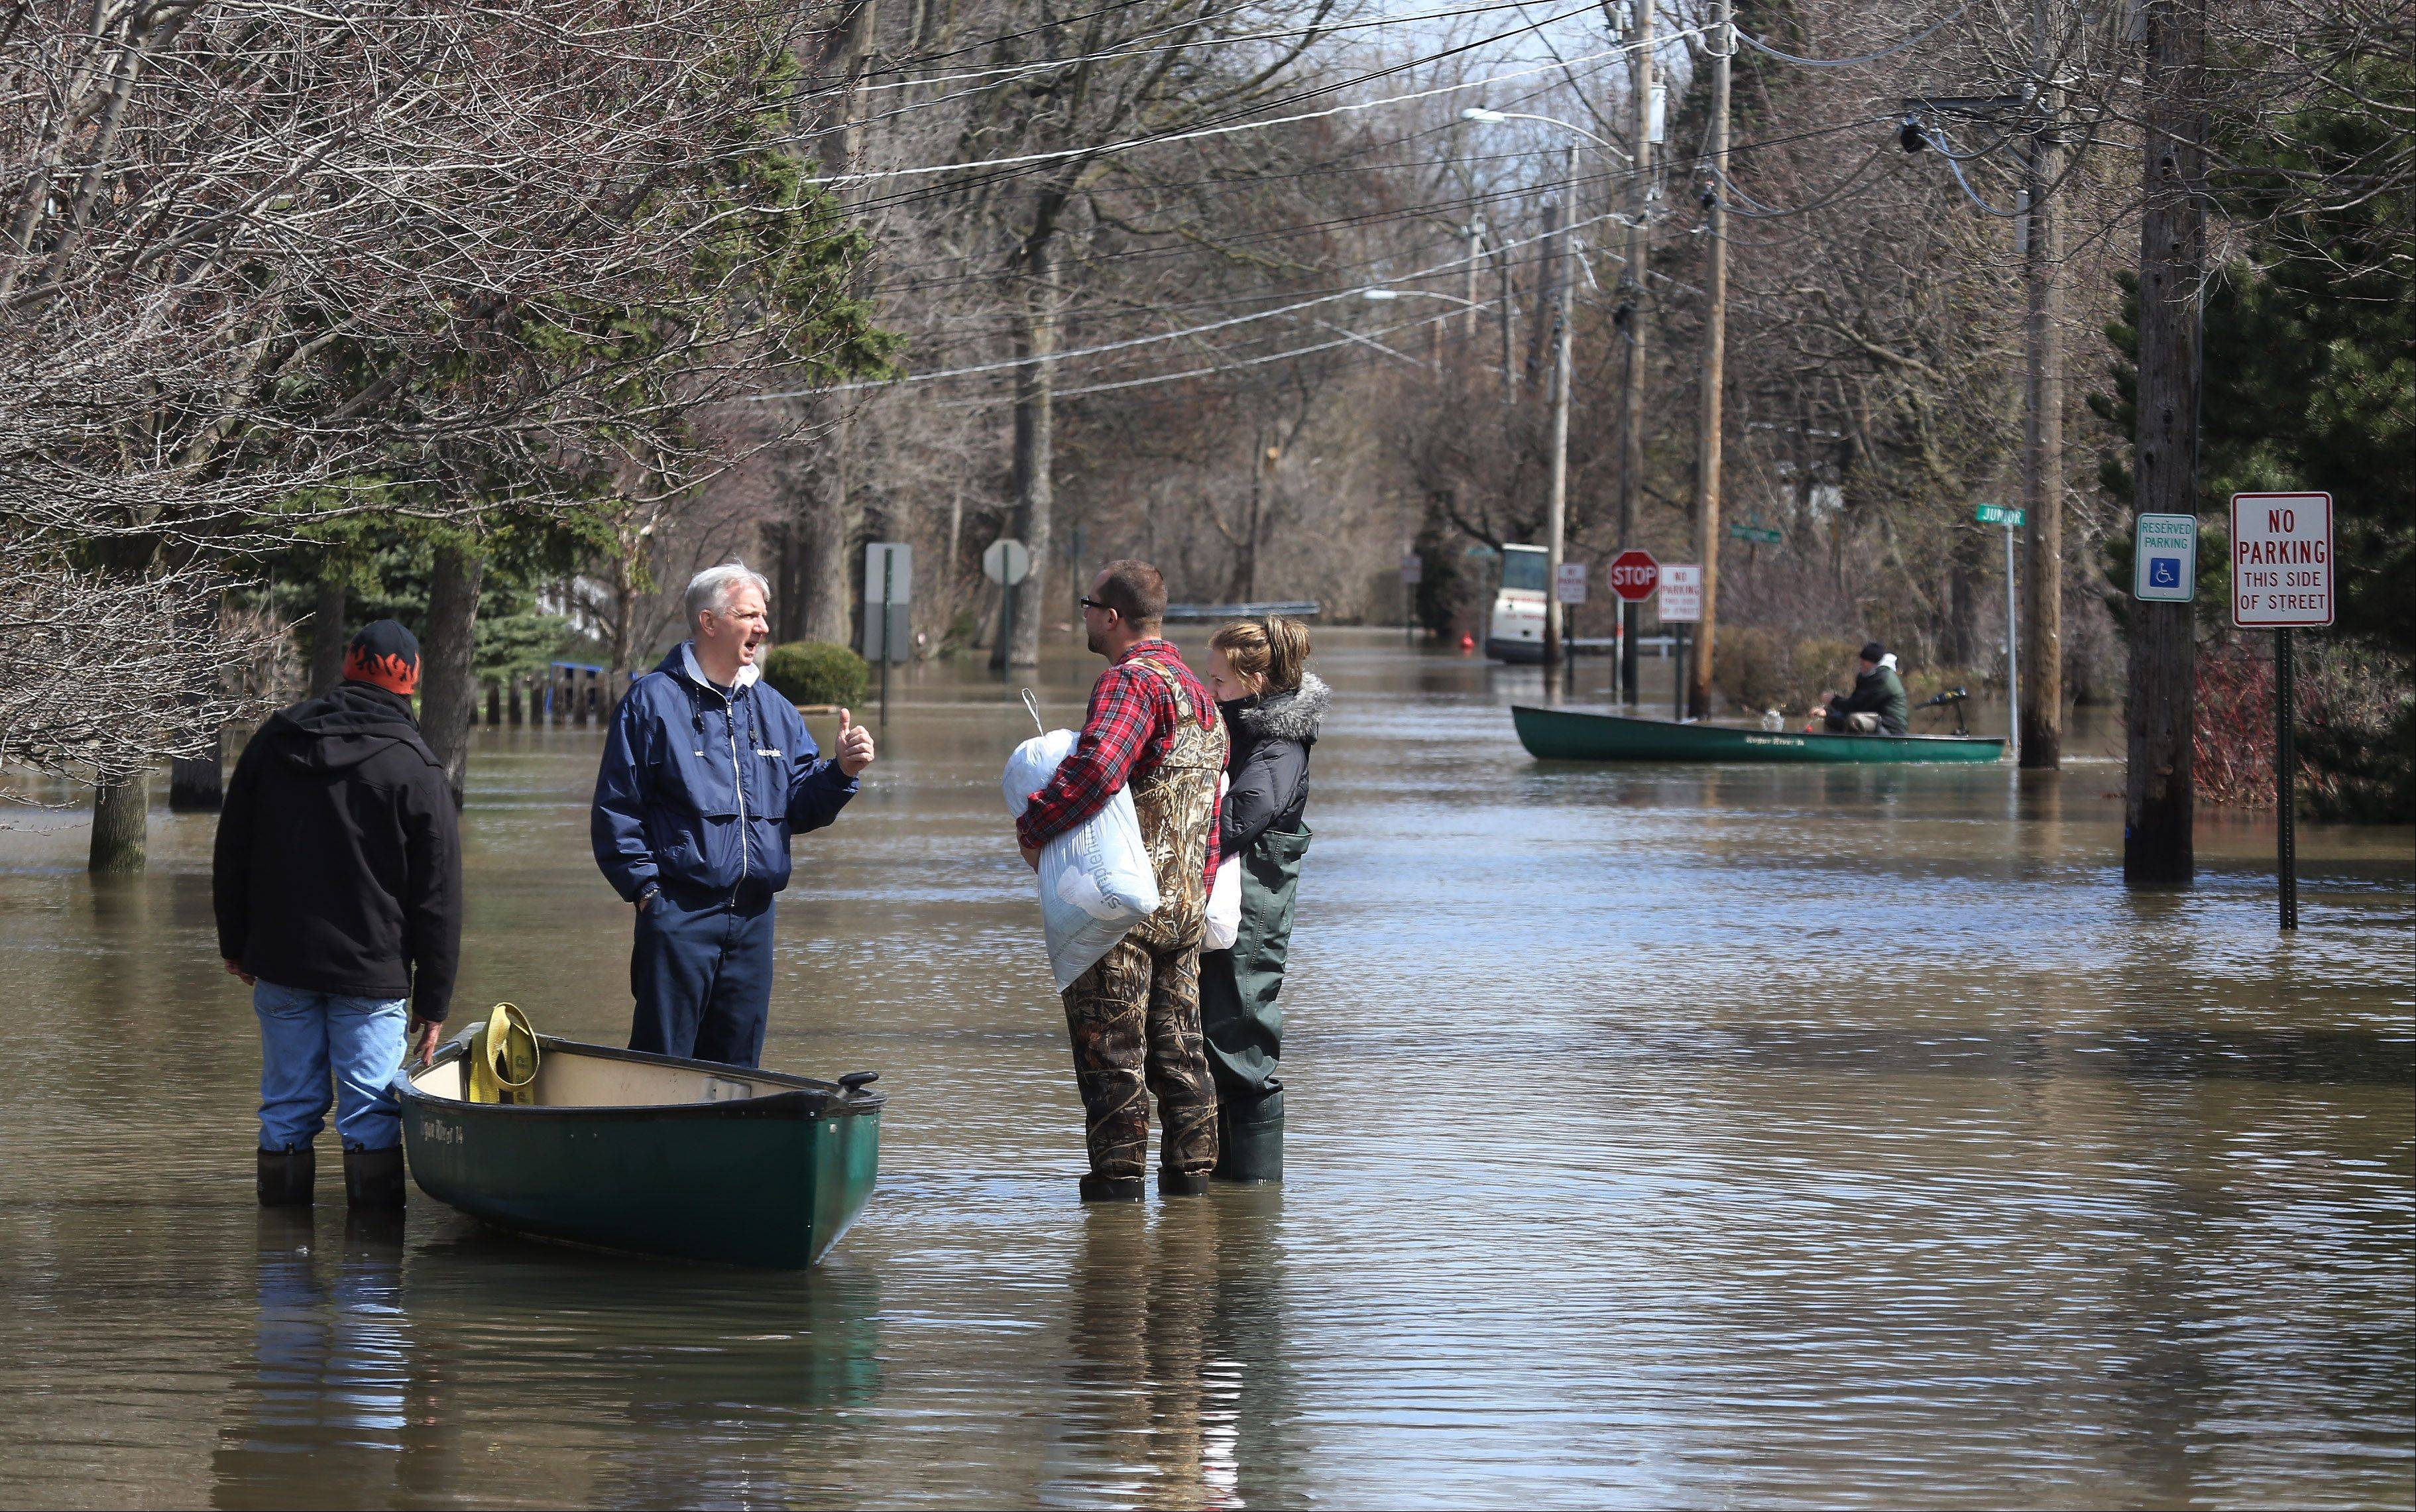 The mode of transportation around Des Plaines neighborhoods on Sunday is by canoe, as Vic Kamka, center, talks to neighbors after flooding along the Des Plaines River.